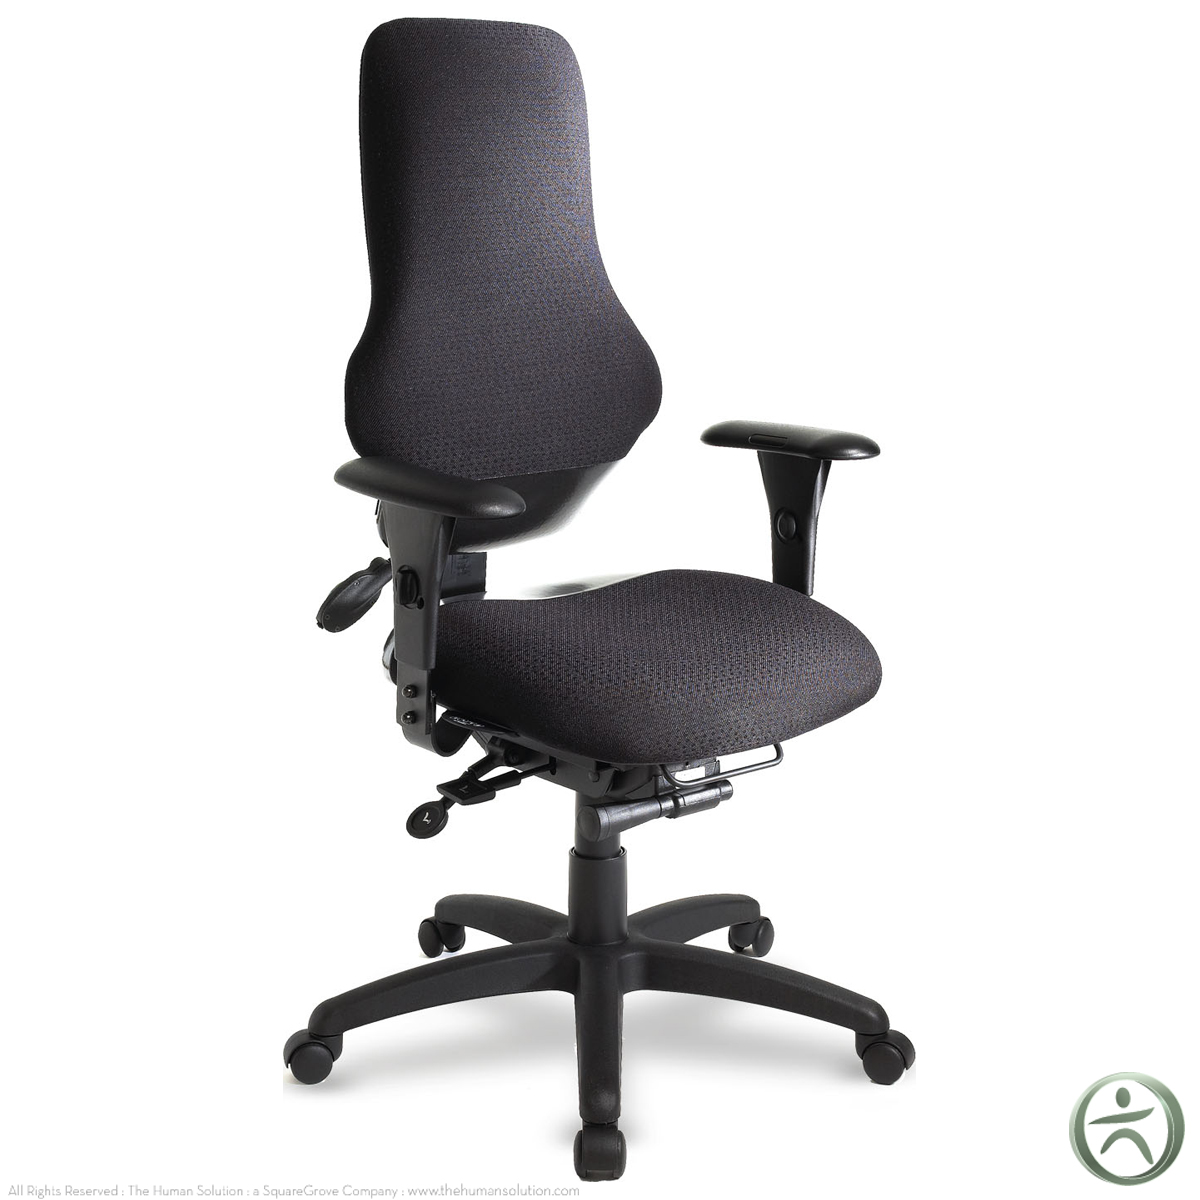 ergonomic chair law dining back covers shop ergocentric ergoforce series for enforcement